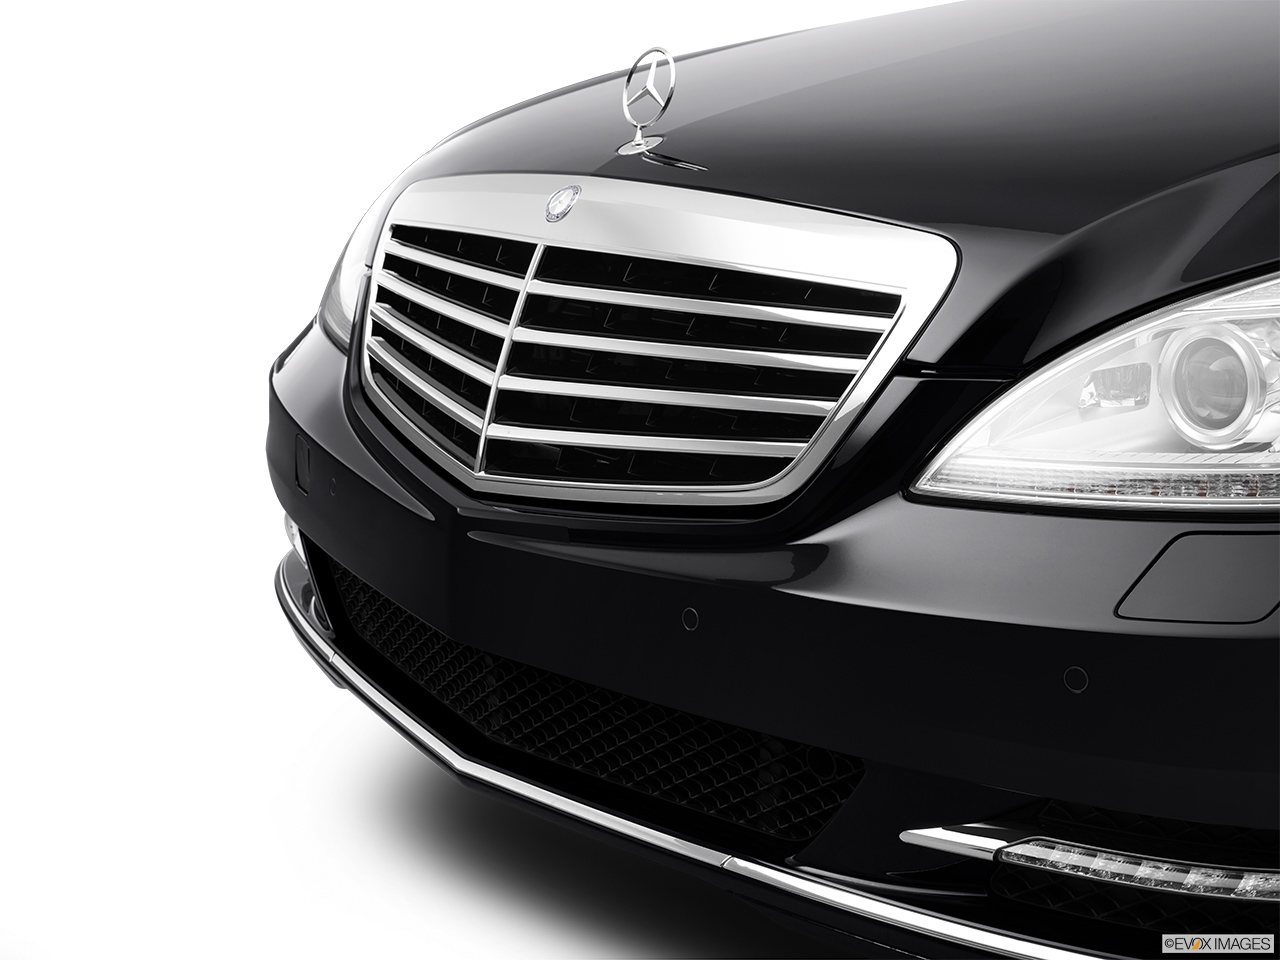 2012 Mercedes-Benz S-Class Hybrid S400 Close up of Grill.